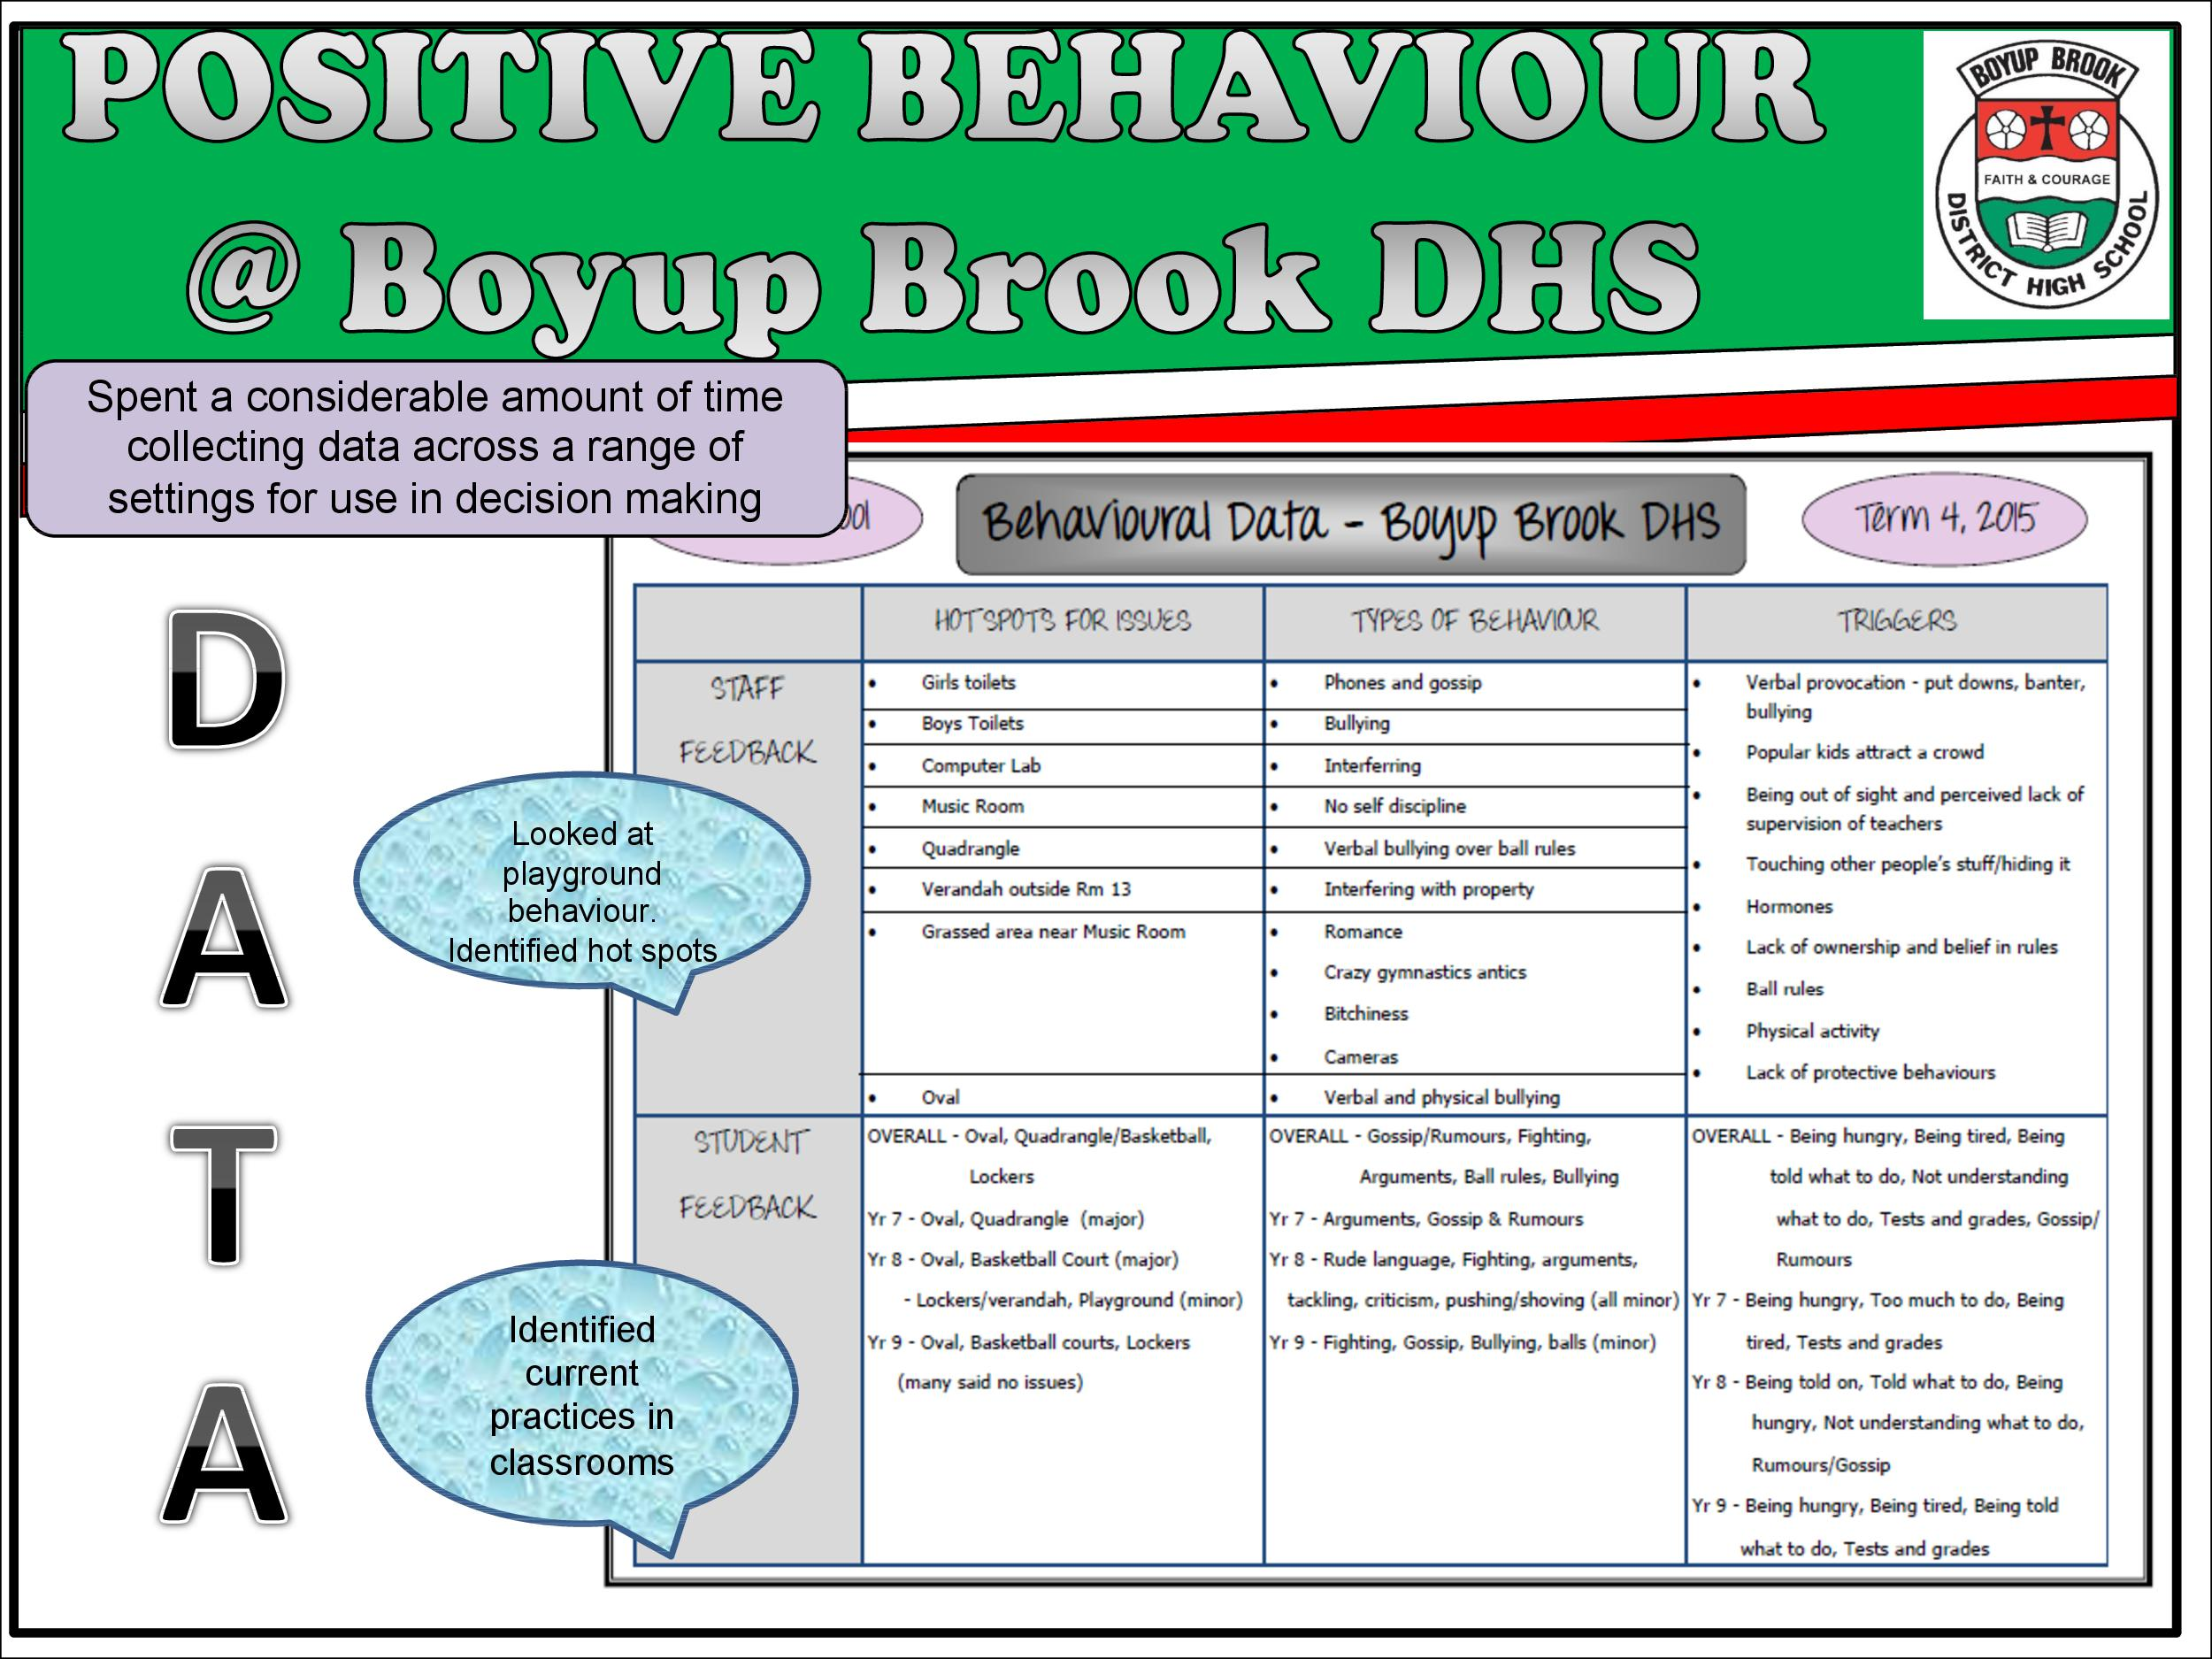 Positive Behaviour Support Page 8